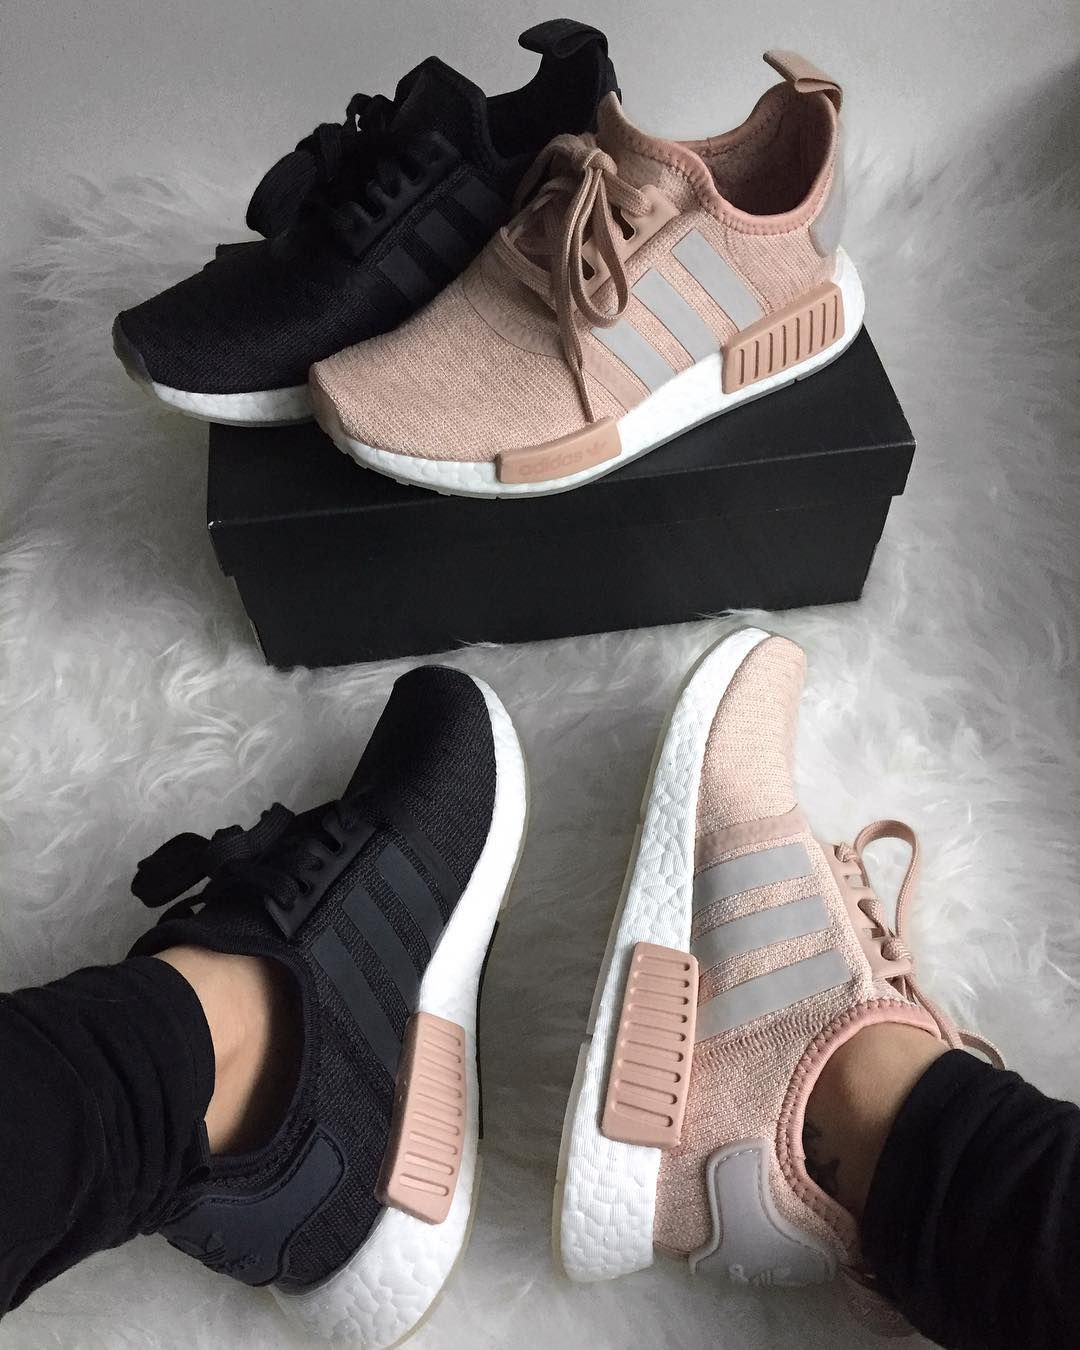 adidas NMD_R1 (Ash Pearl Chalk Pearl | SHOES. | Cute shoes